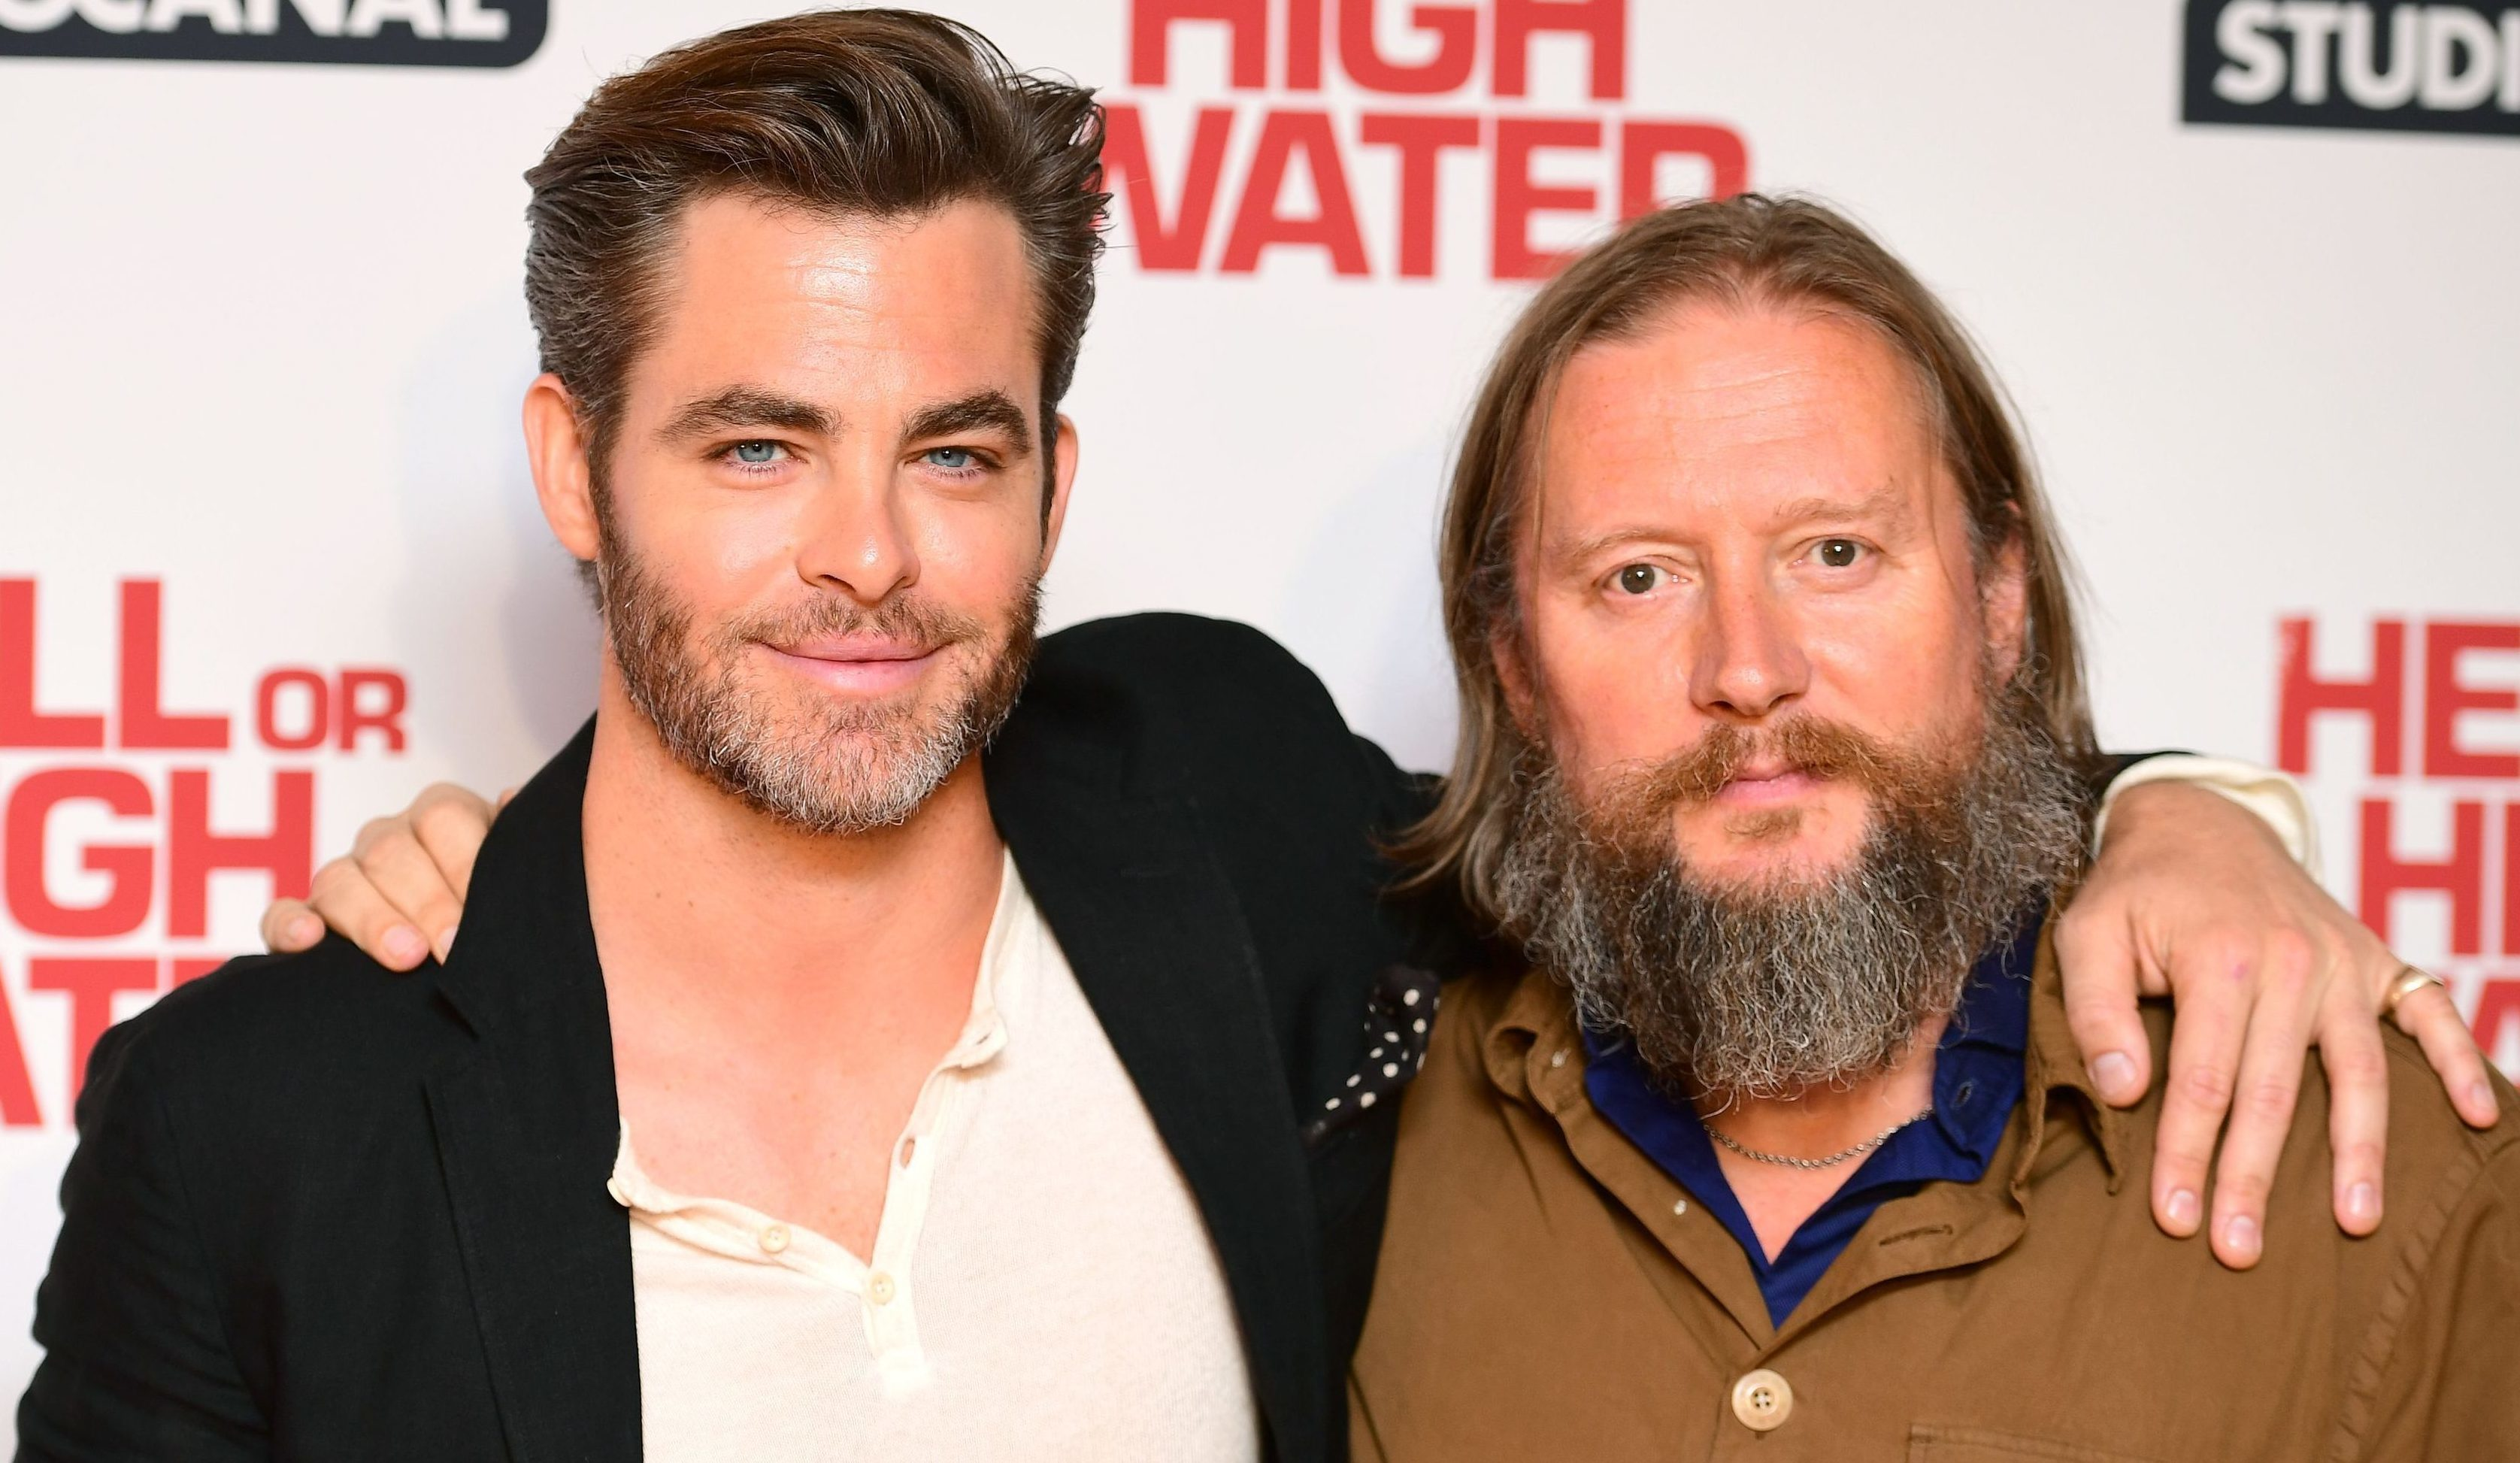 Actor Chris Pine and director David Mackenzie at a screening of Hell or High Water in London.